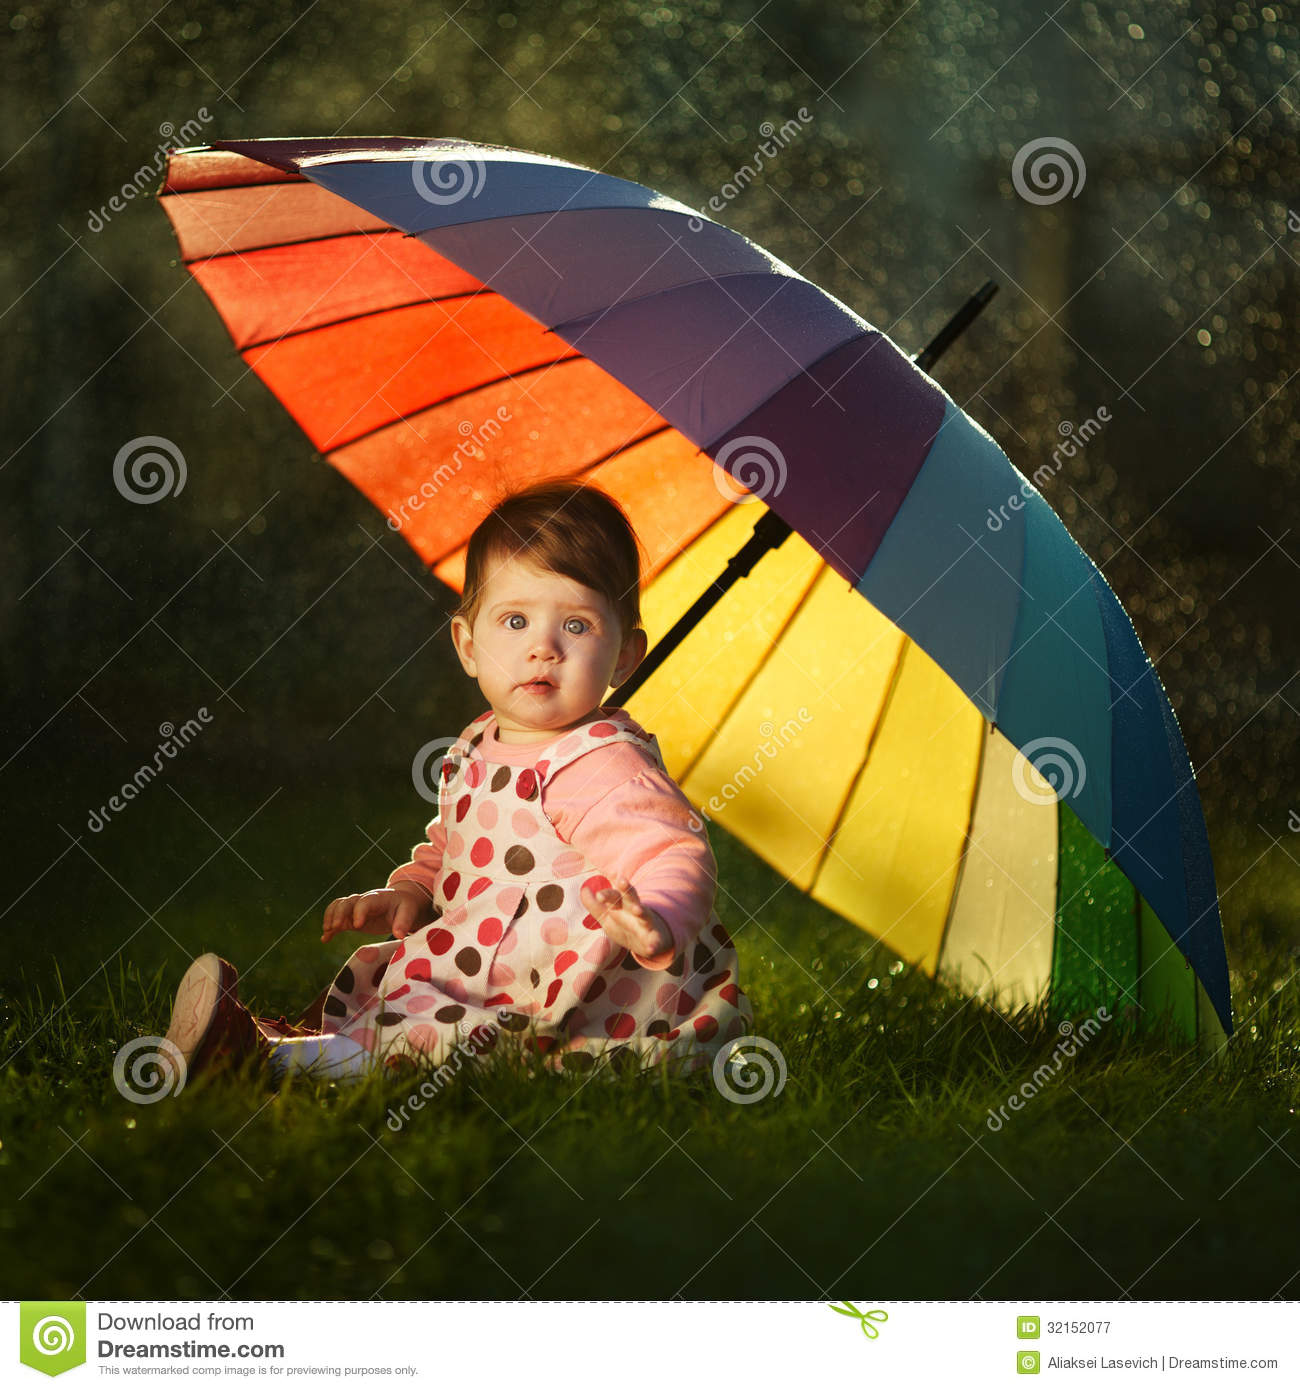 Download Sweet Girl Wallpaper Little Girl With A Rainbow Umbrella In Park Royalty Free